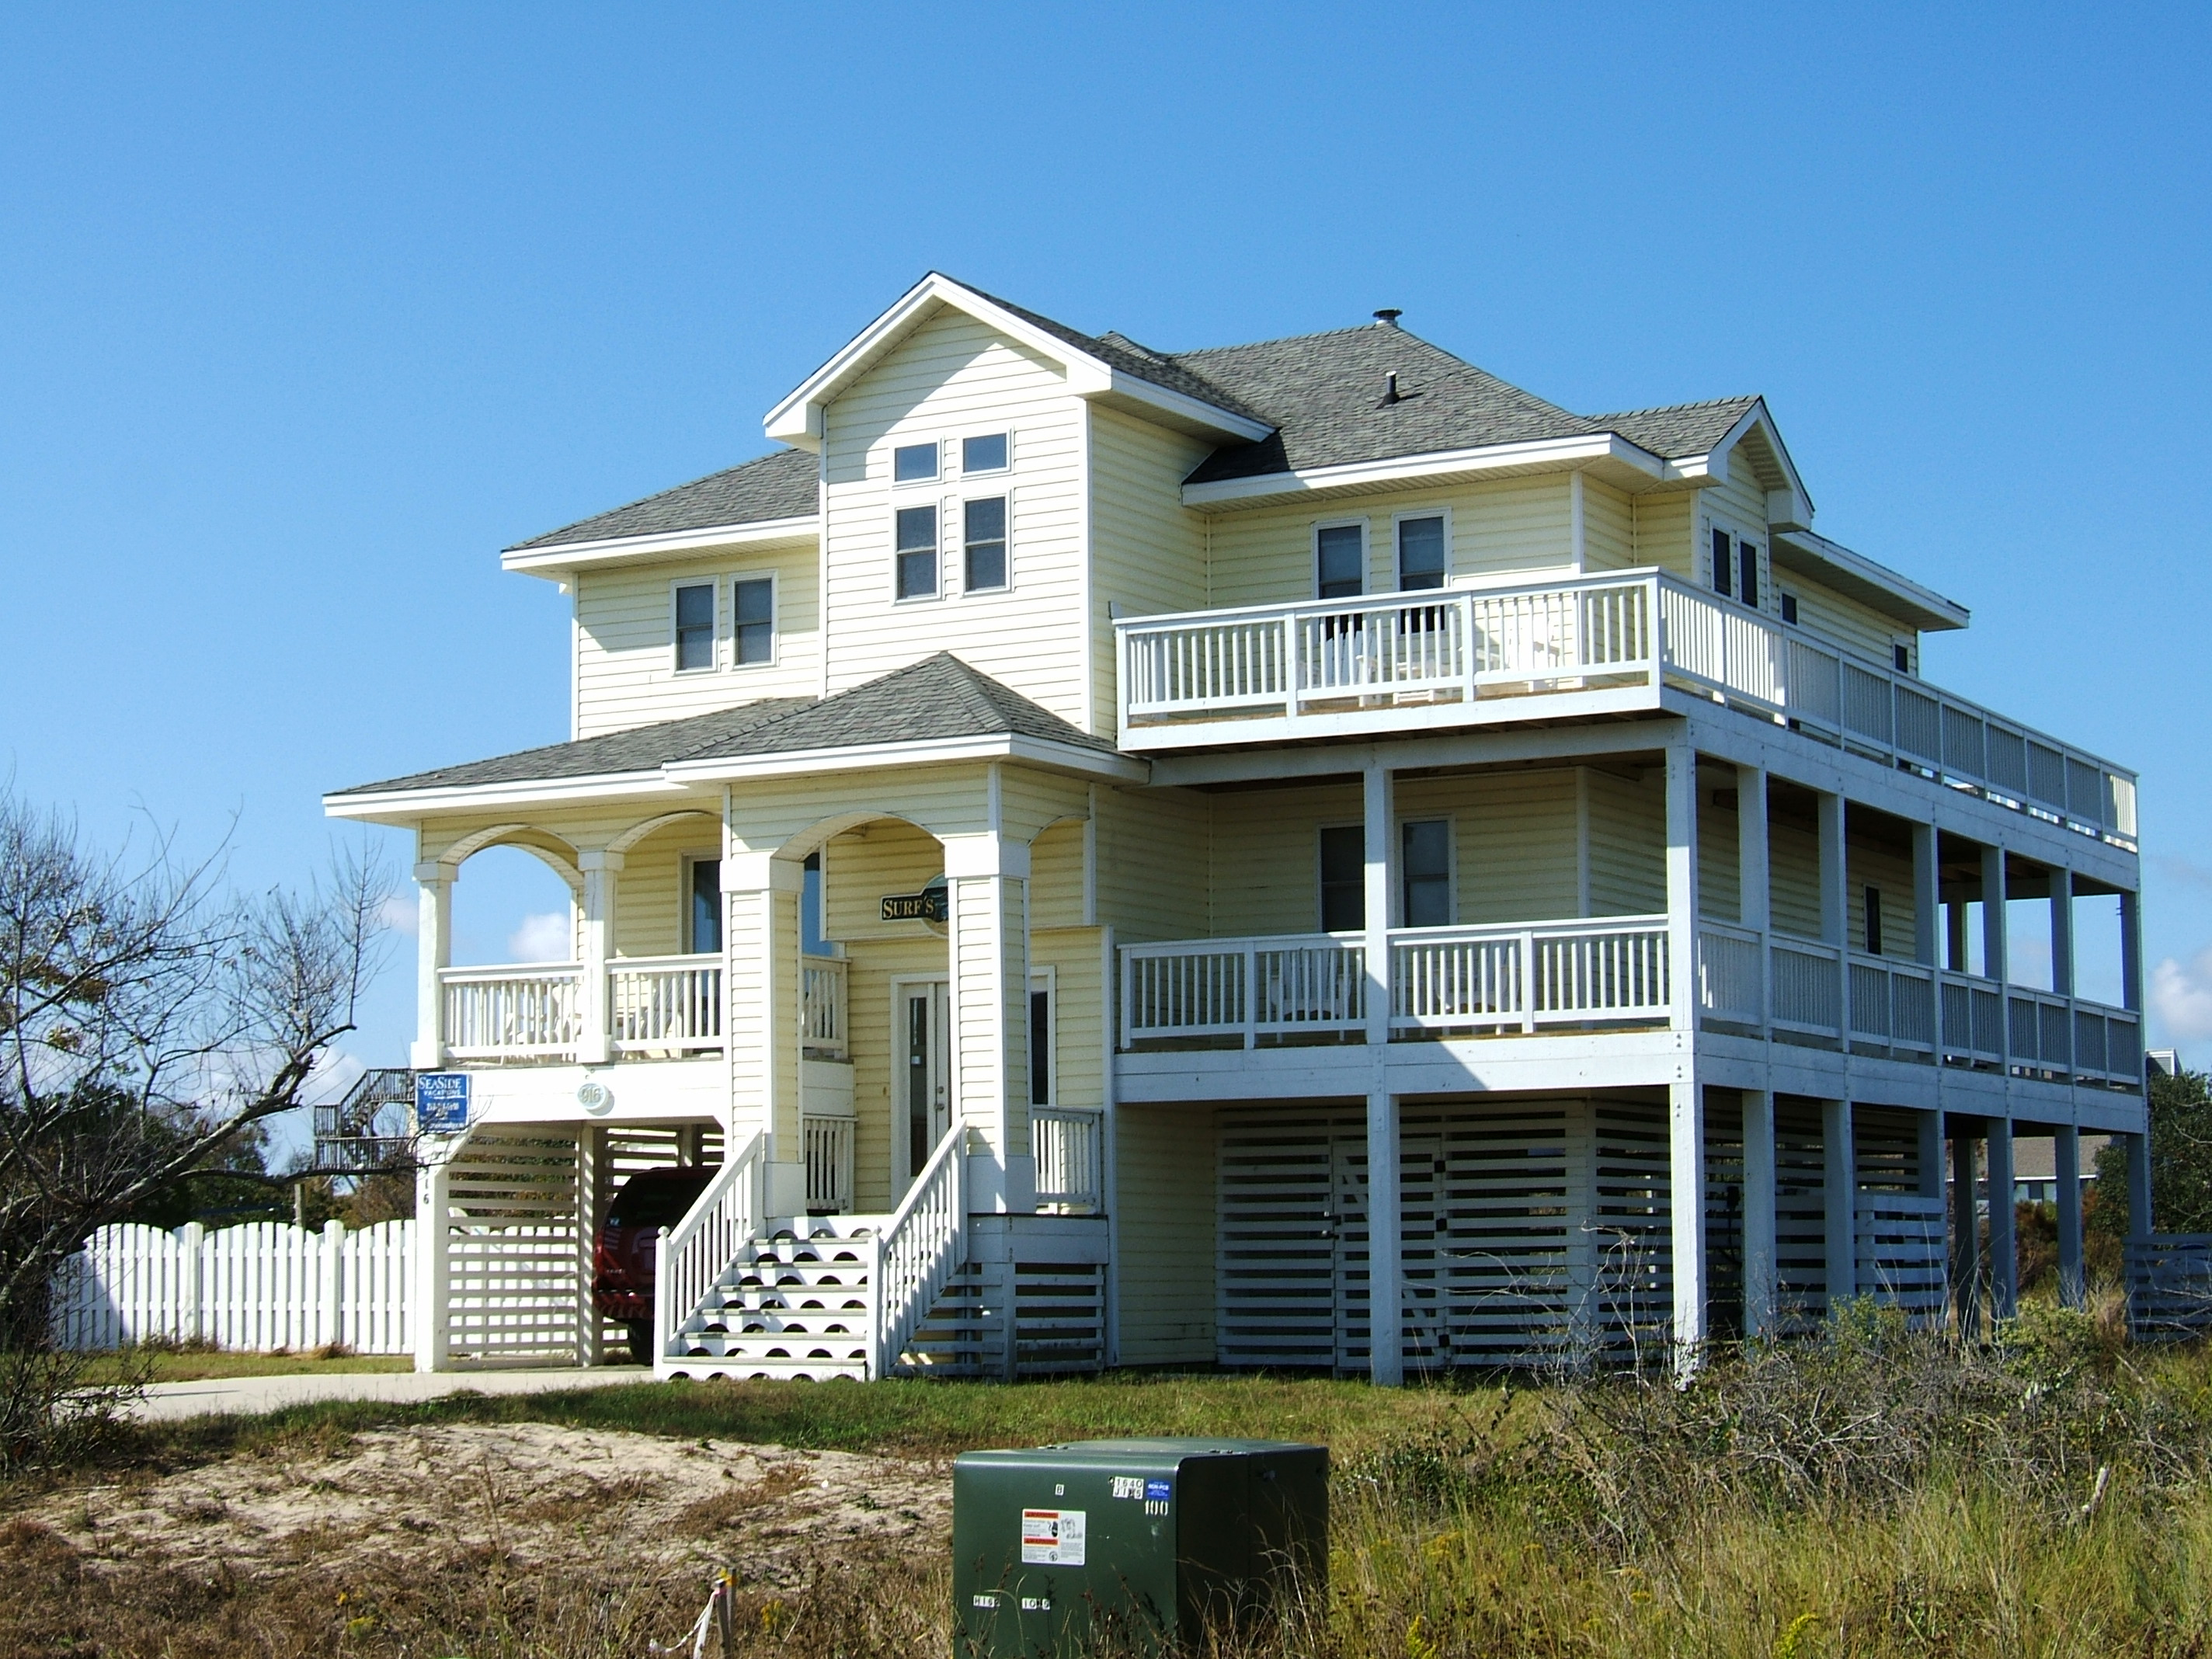 Amazing grace corolla corolla nc vacation rental autos post for Amazing holiday rentals